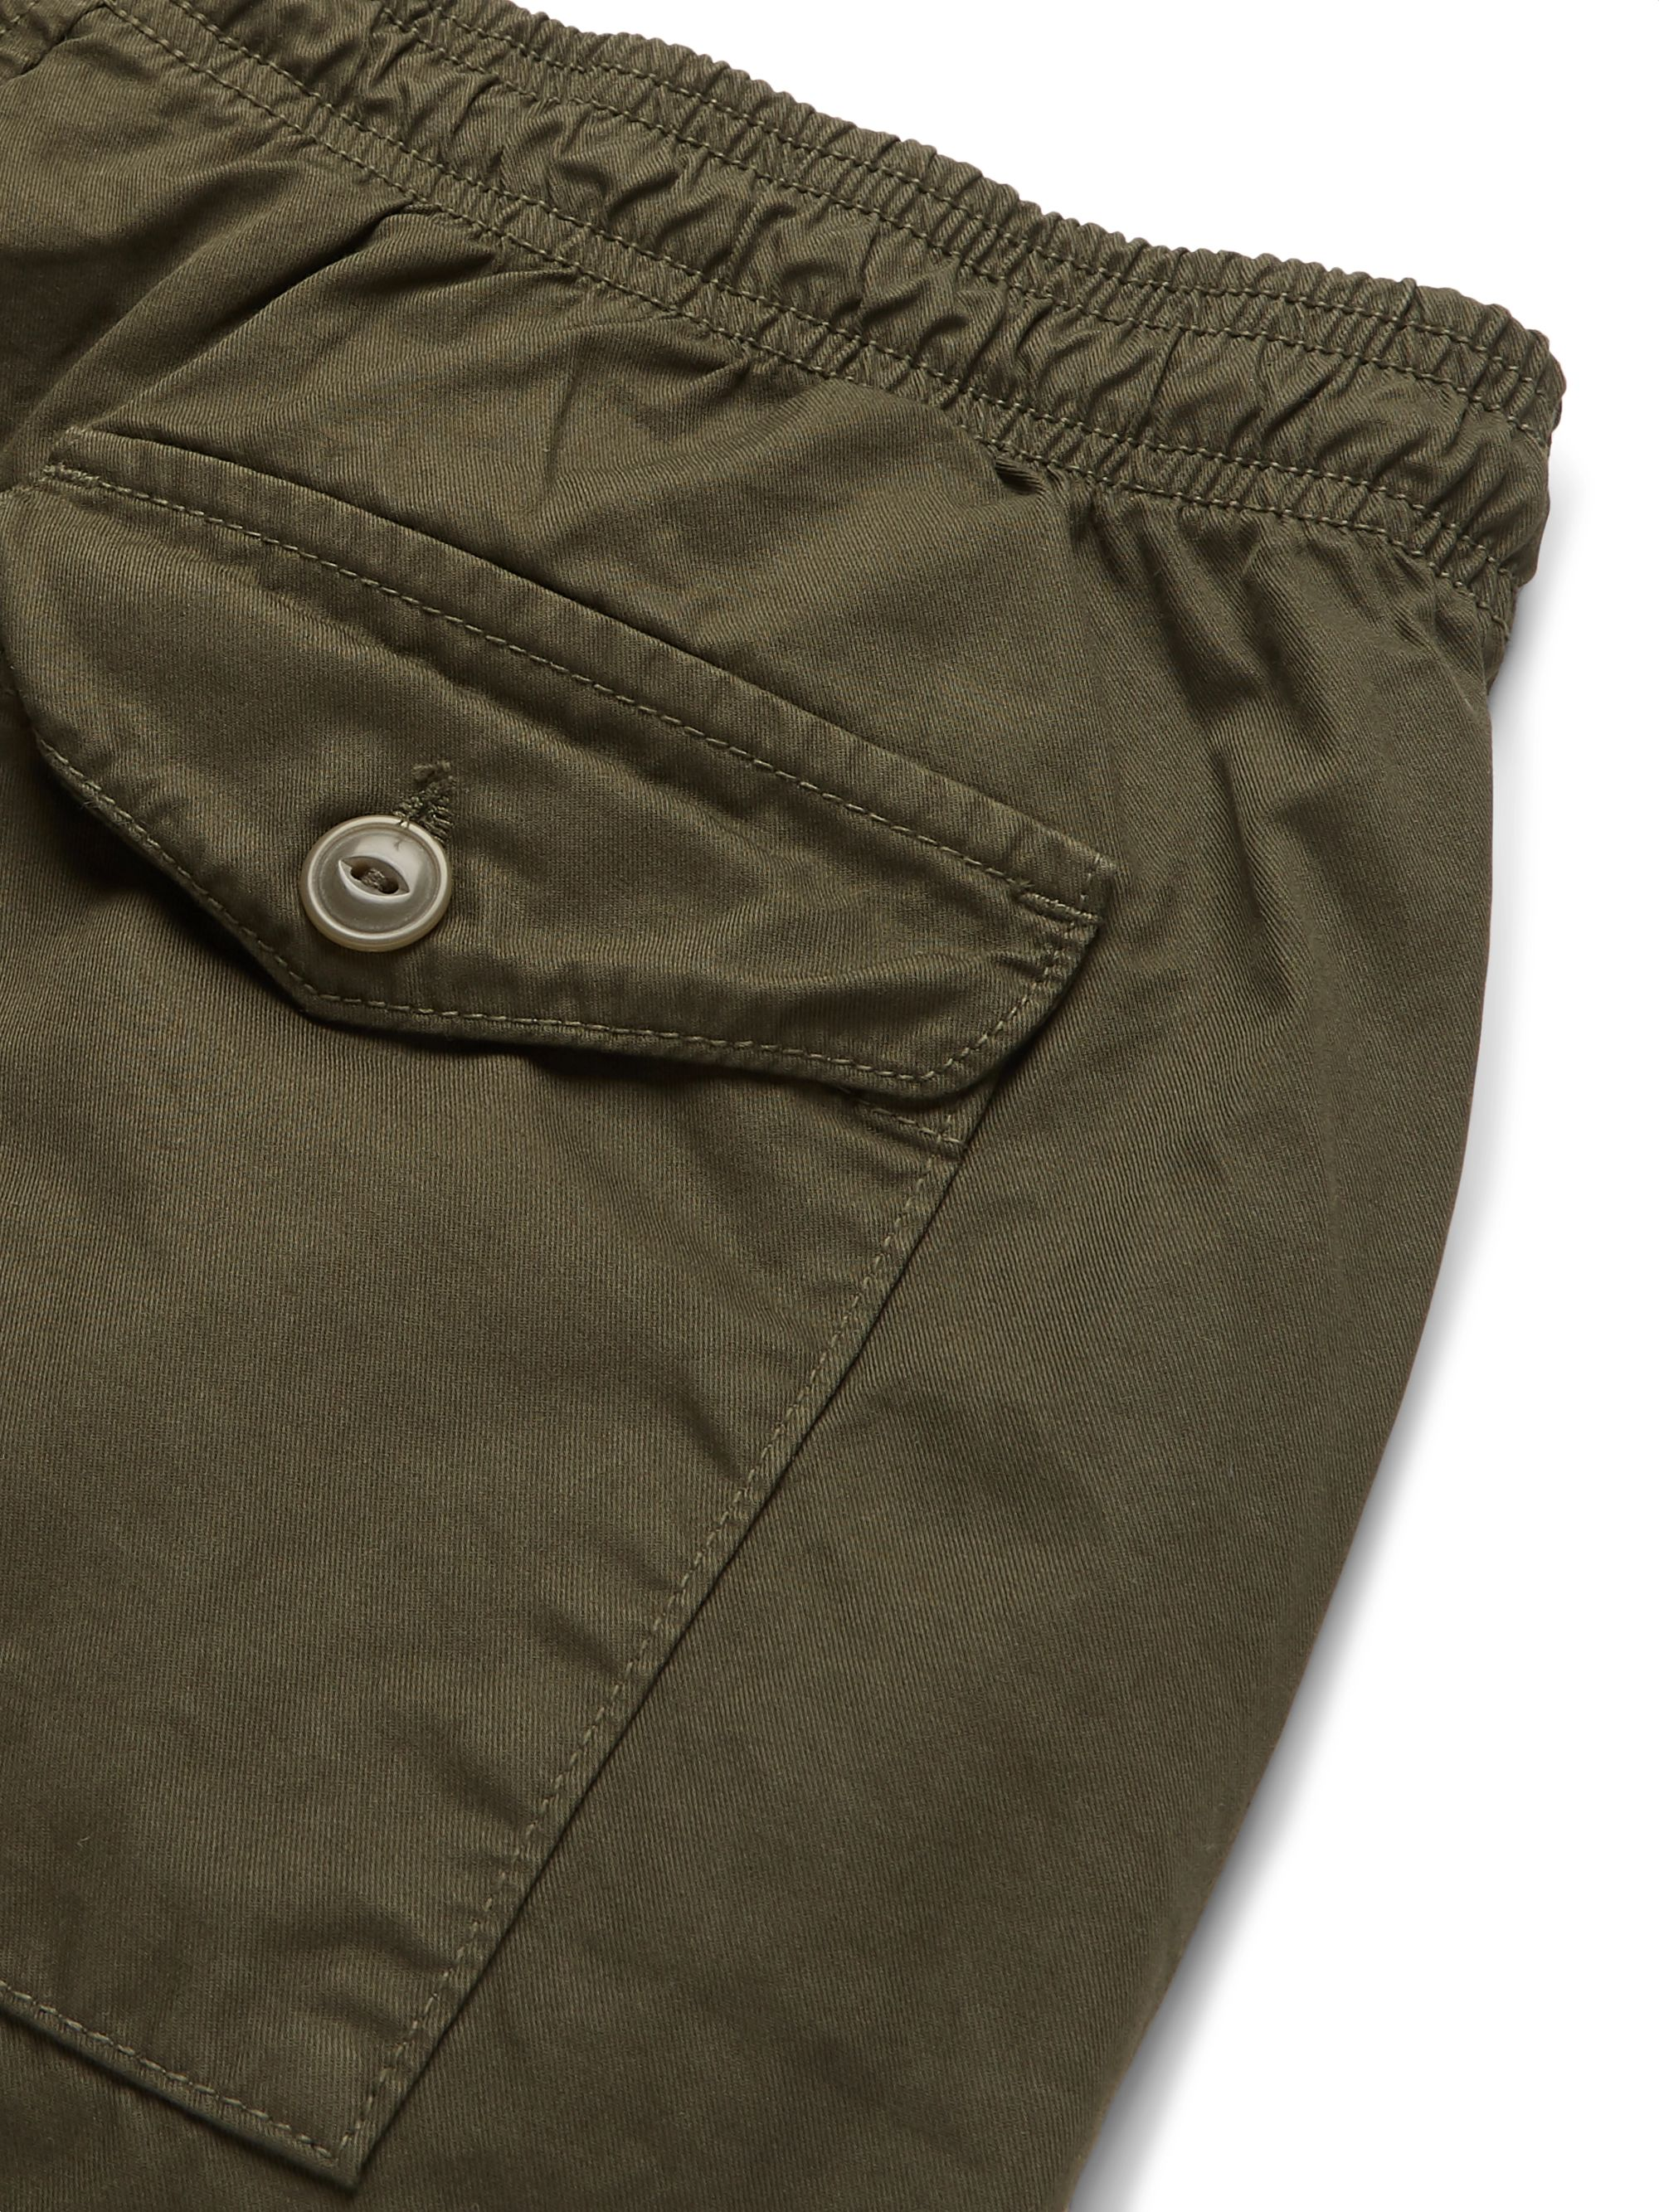 Save Khaki United Easy Cotton-Twill Drawstring Shorts